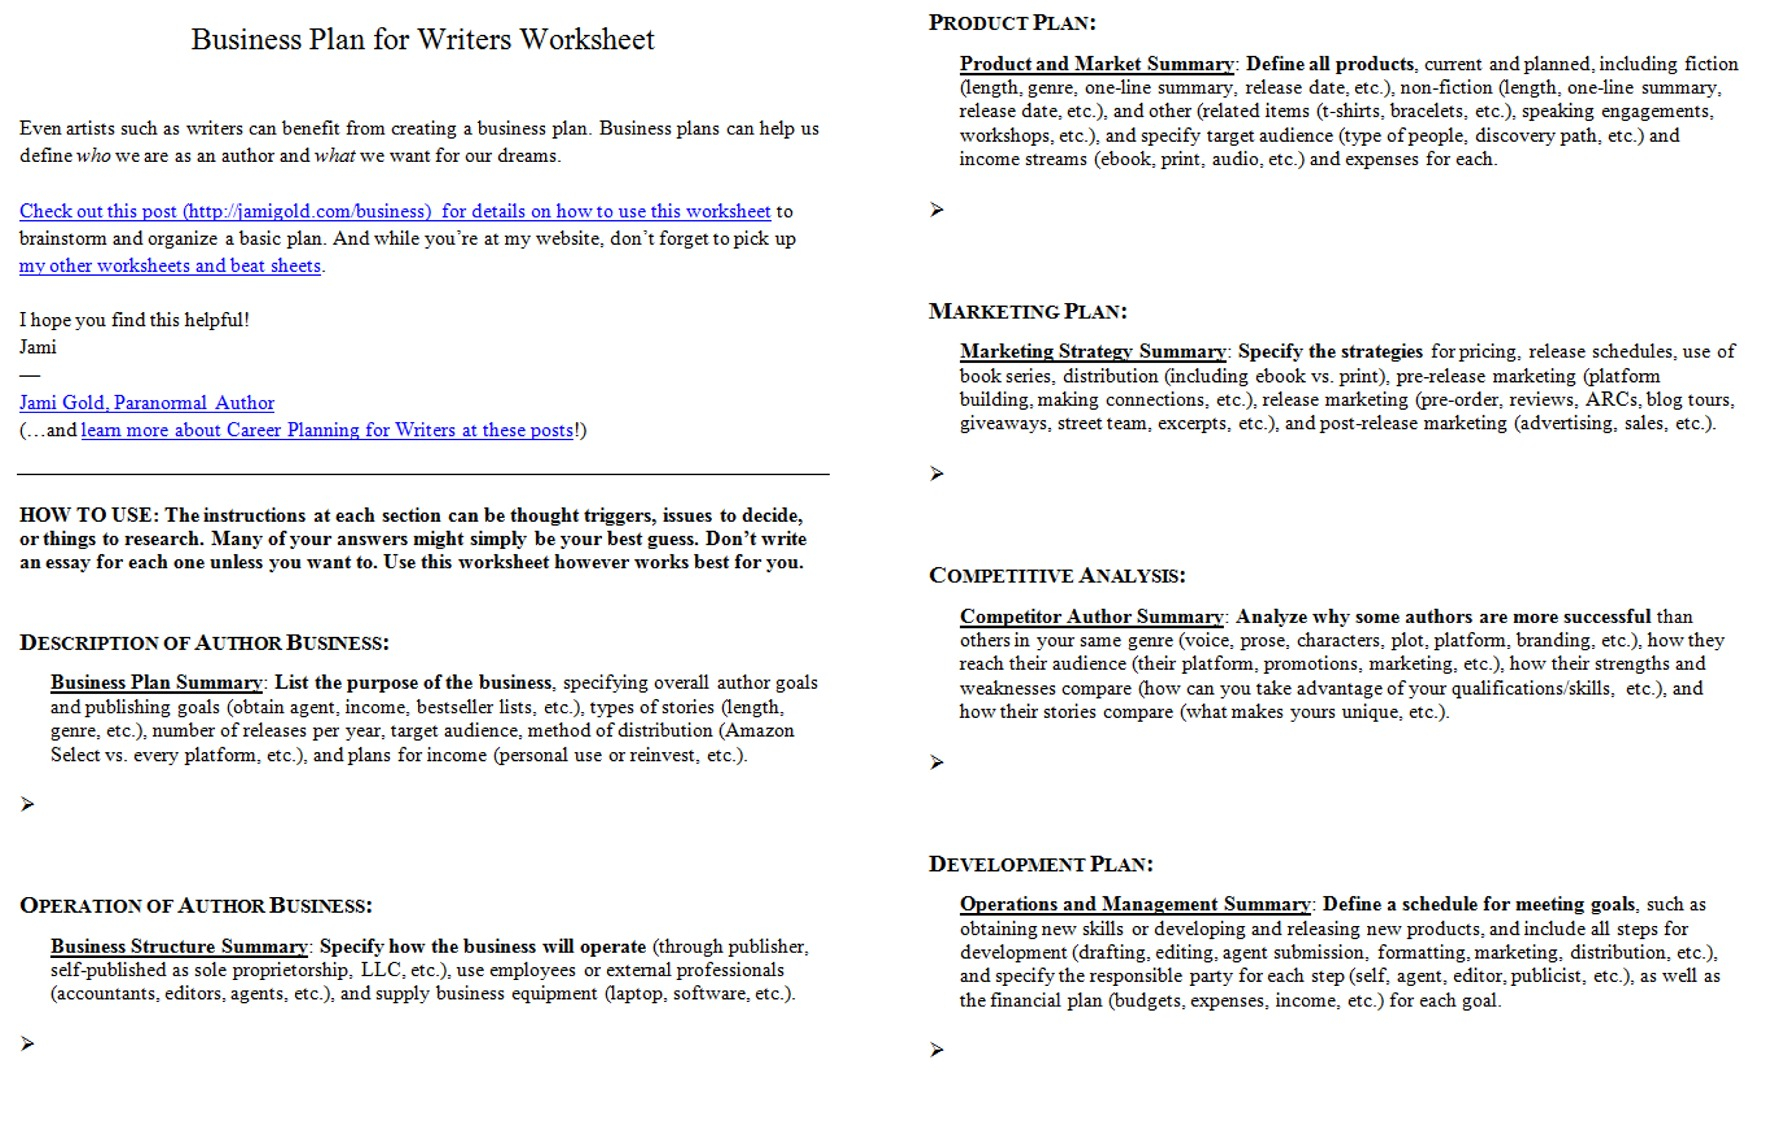 Proatmealus  Inspiring Worksheets For Writers  Jami Gold Paranormal Author With Excellent Screen Shot Of Both Pages Of The Business Plan For Writers Worksheet With Easy On The Eye Rock Review Worksheet Also Year One Worksheets In Addition Worksheets Jobs And  Times Table Worksheet As Well As Shakespeare Language Worksheet Additionally Letter N Worksheets Preschool From Jamigoldcom With Proatmealus  Excellent Worksheets For Writers  Jami Gold Paranormal Author With Easy On The Eye Screen Shot Of Both Pages Of The Business Plan For Writers Worksheet And Inspiring Rock Review Worksheet Also Year One Worksheets In Addition Worksheets Jobs From Jamigoldcom